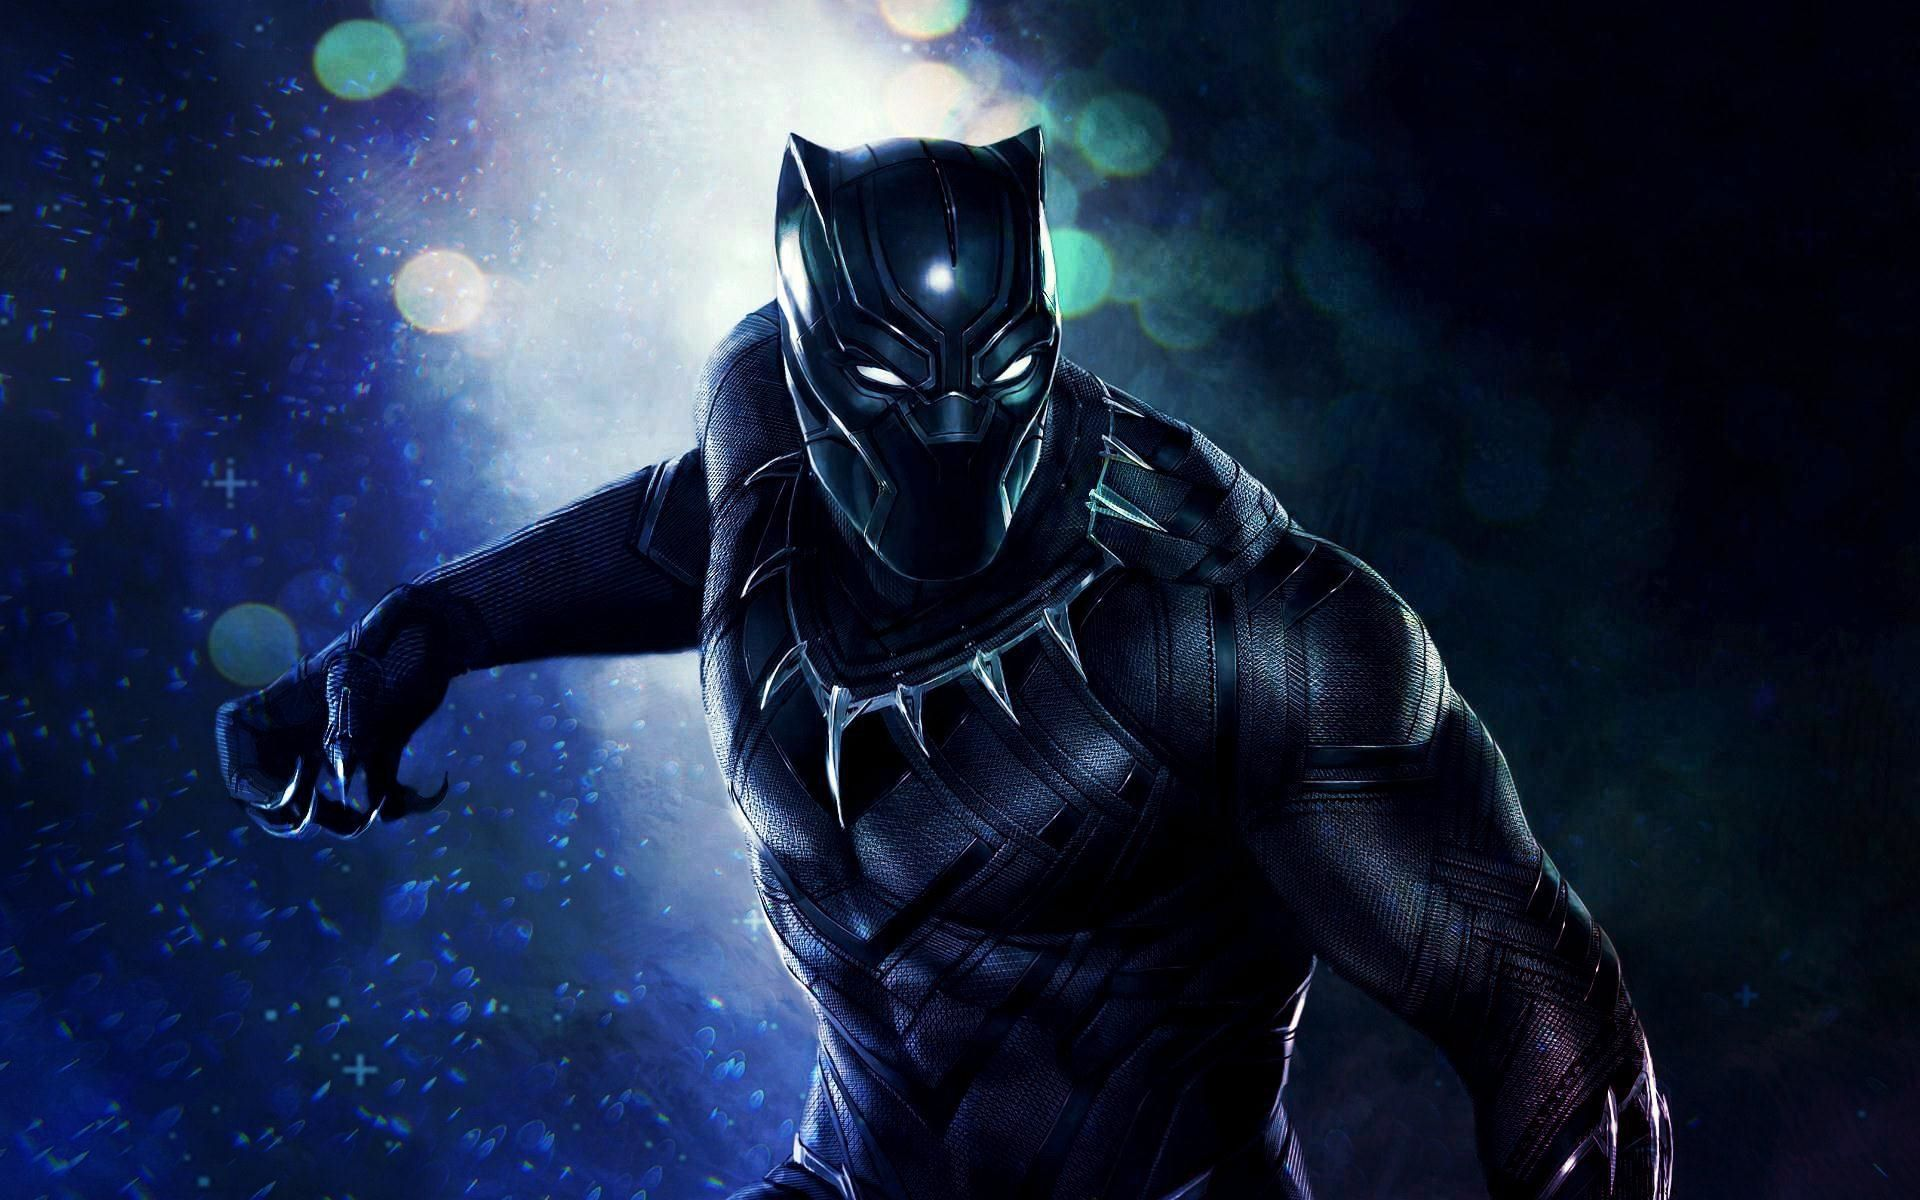 Movie Wallpaper Marvel Black Panther Wallpaper 1080p HD